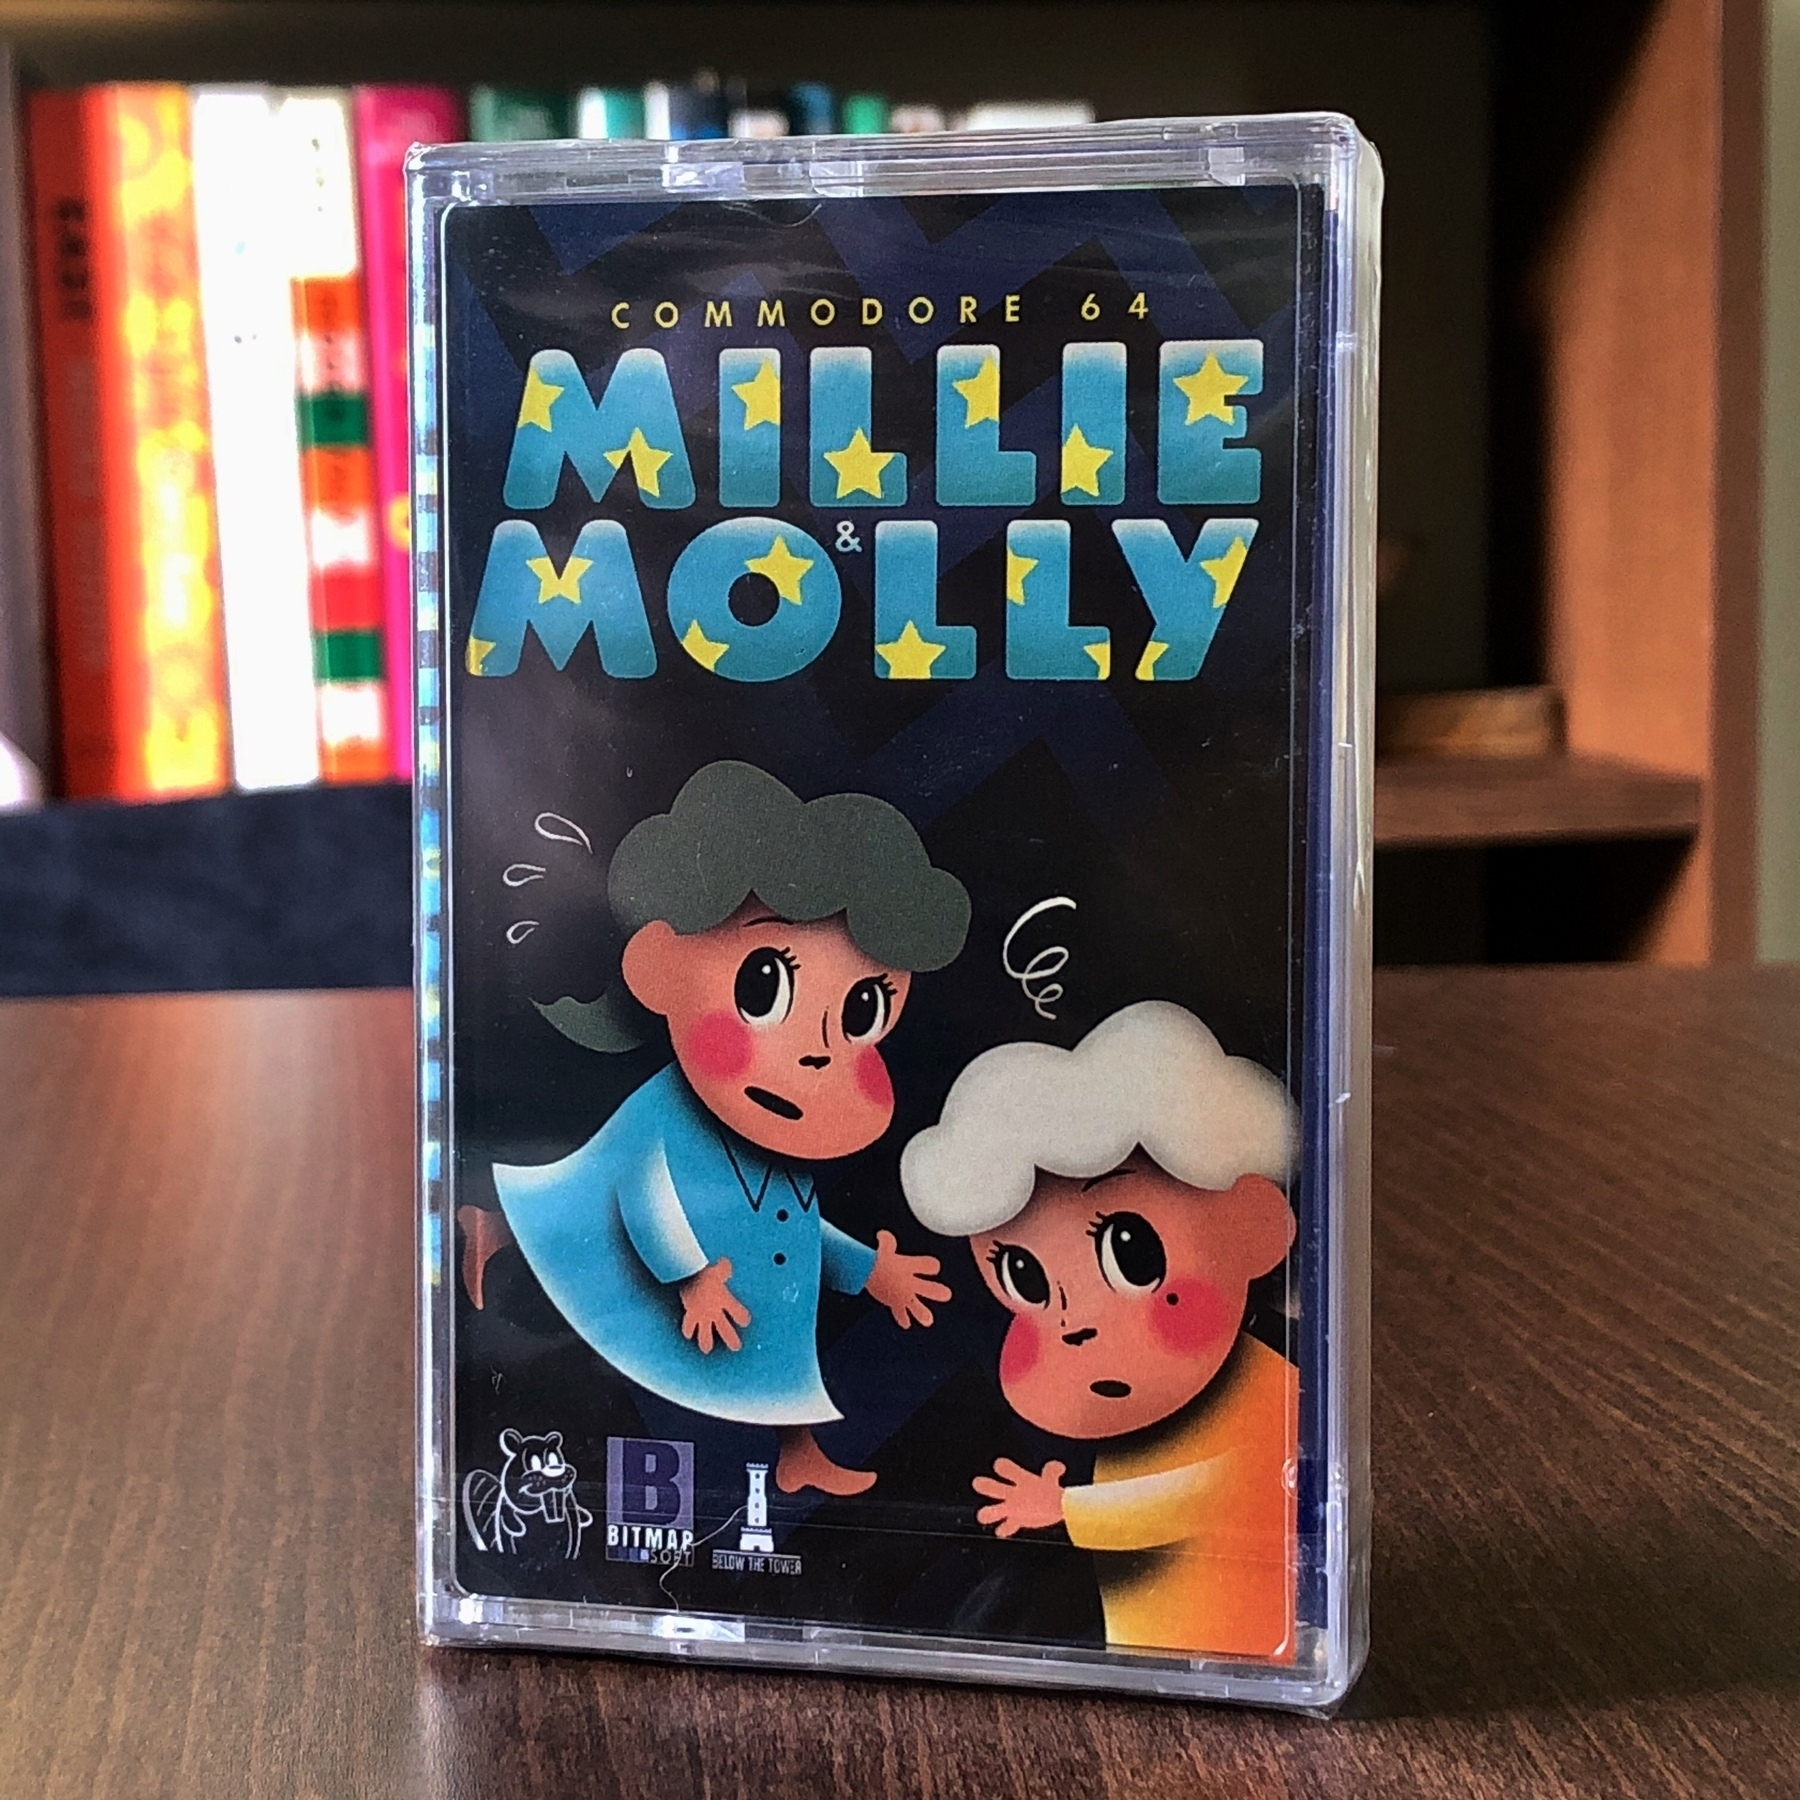 Commodore 64 cassette tape game Millie ans Molly with illustrated cover showing the main characters.